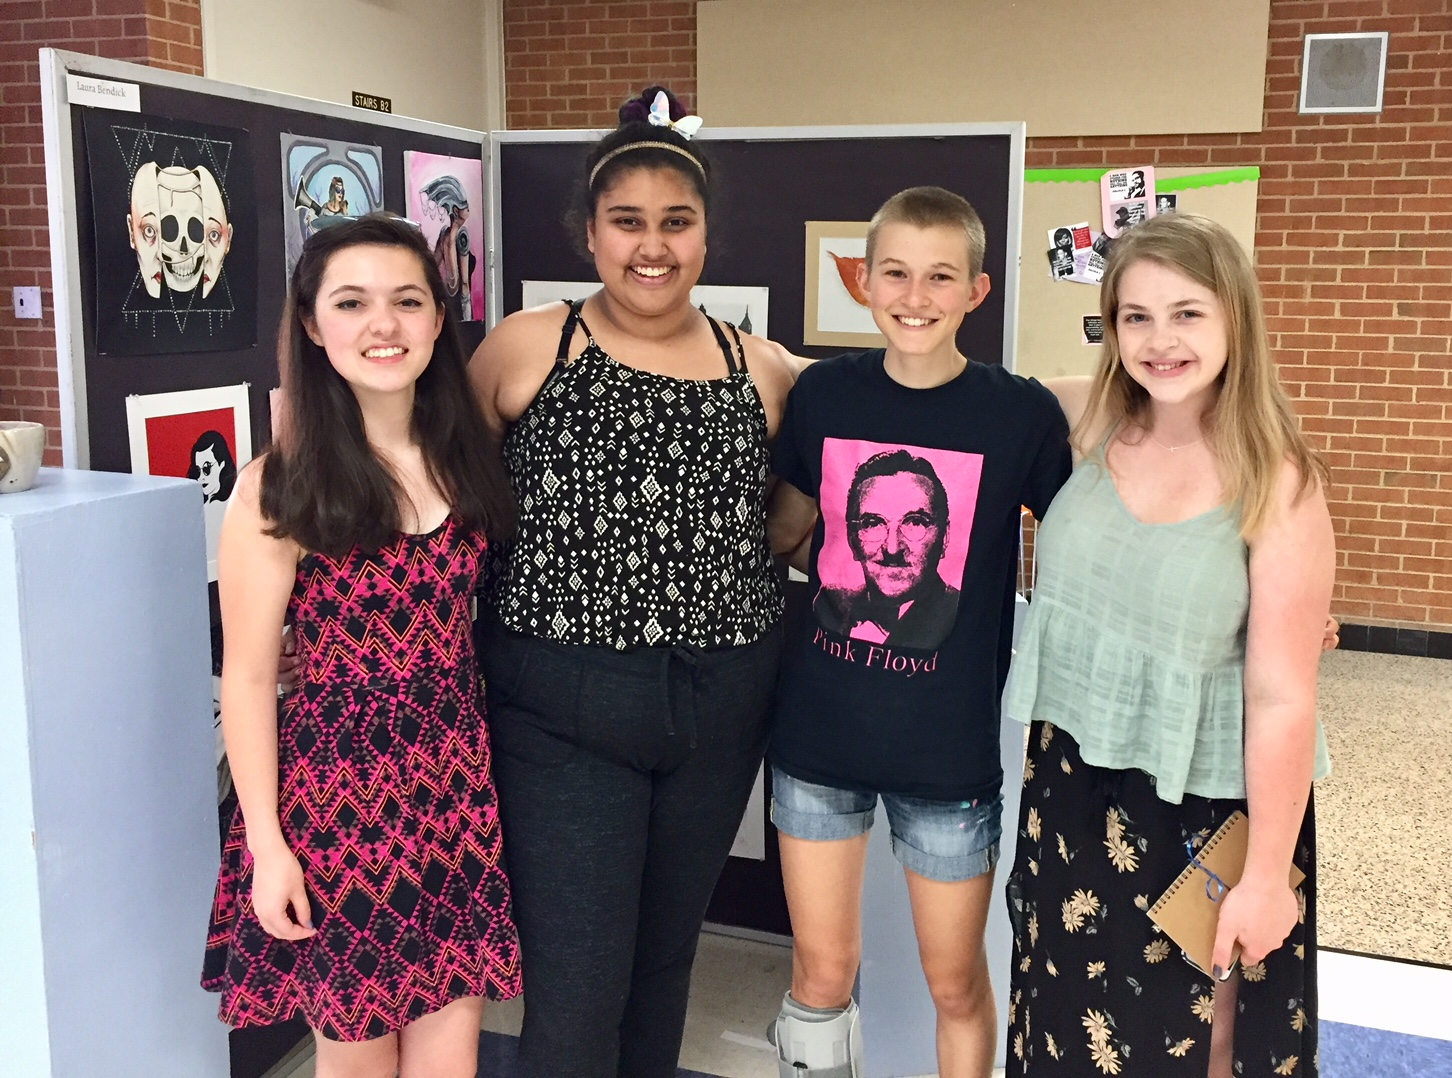 Gayathri Prakash with her fellow senior artists at the Senior Art Show. From left to right: Laura Bendick, Gayathri Prakash, Zoe Clay, and Emma Schmidt.